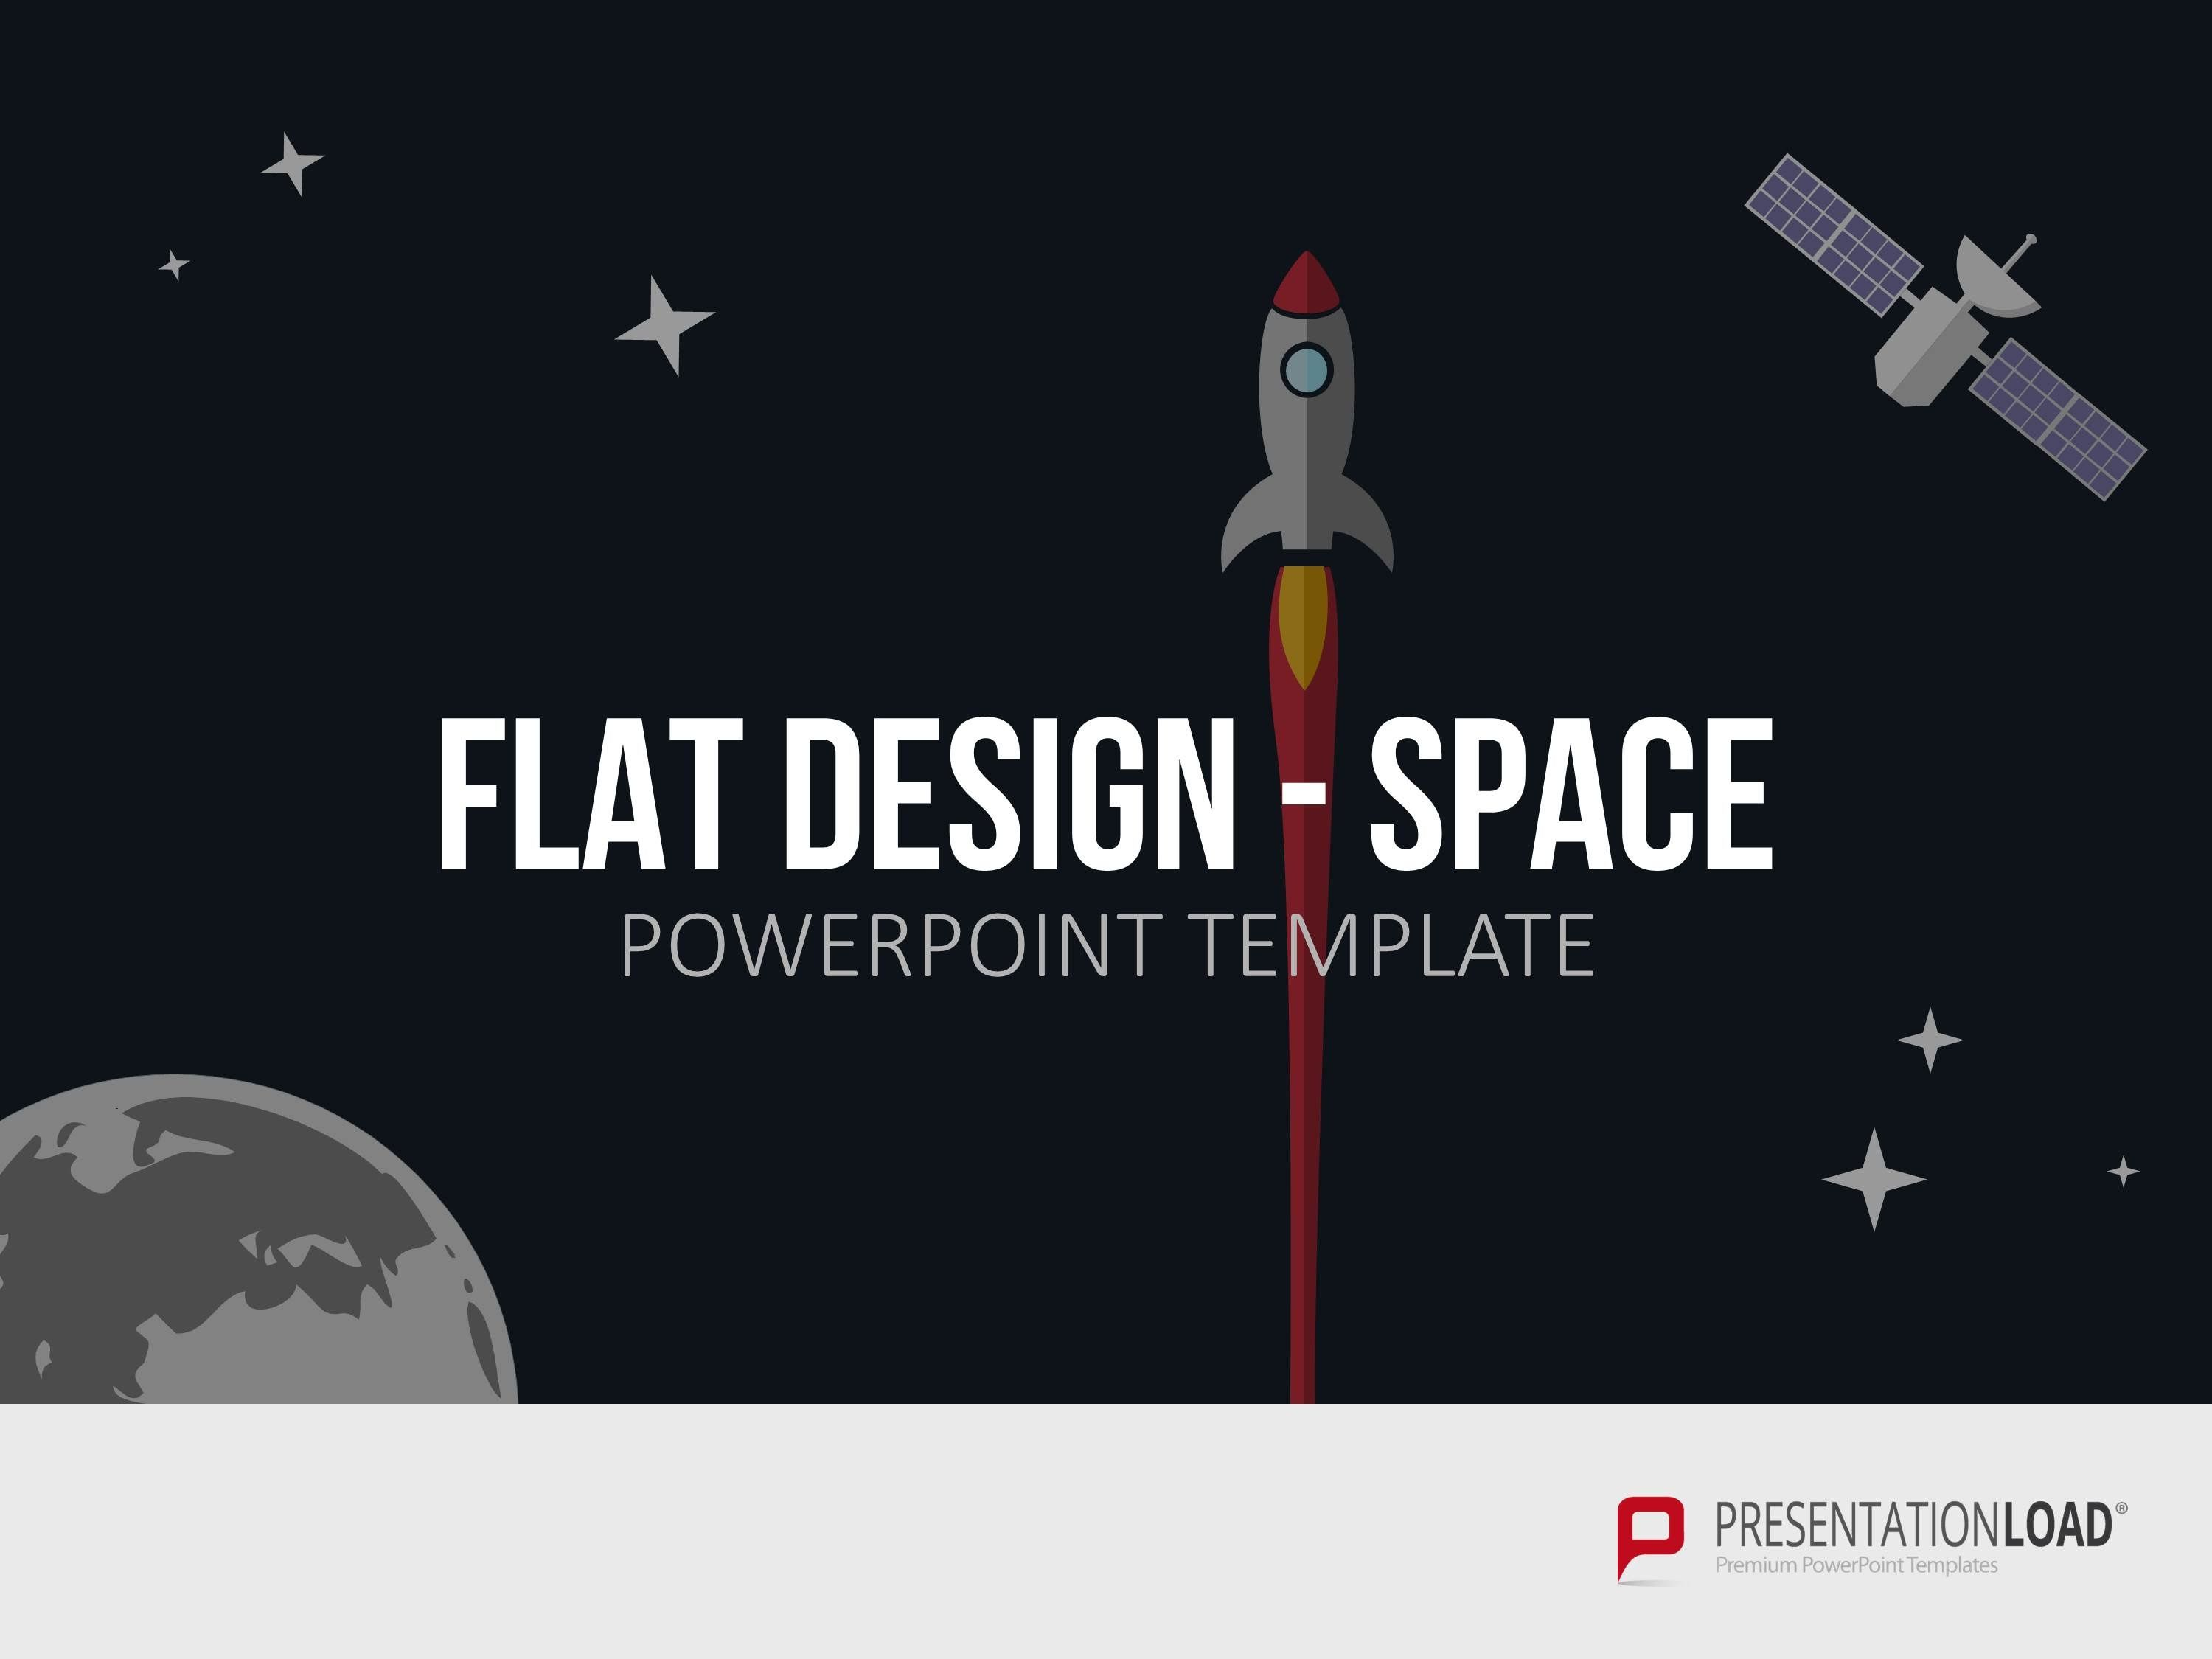 Pin by presentation load on flat design powerpoint templates flat design templates toneelgroepblik Image collections